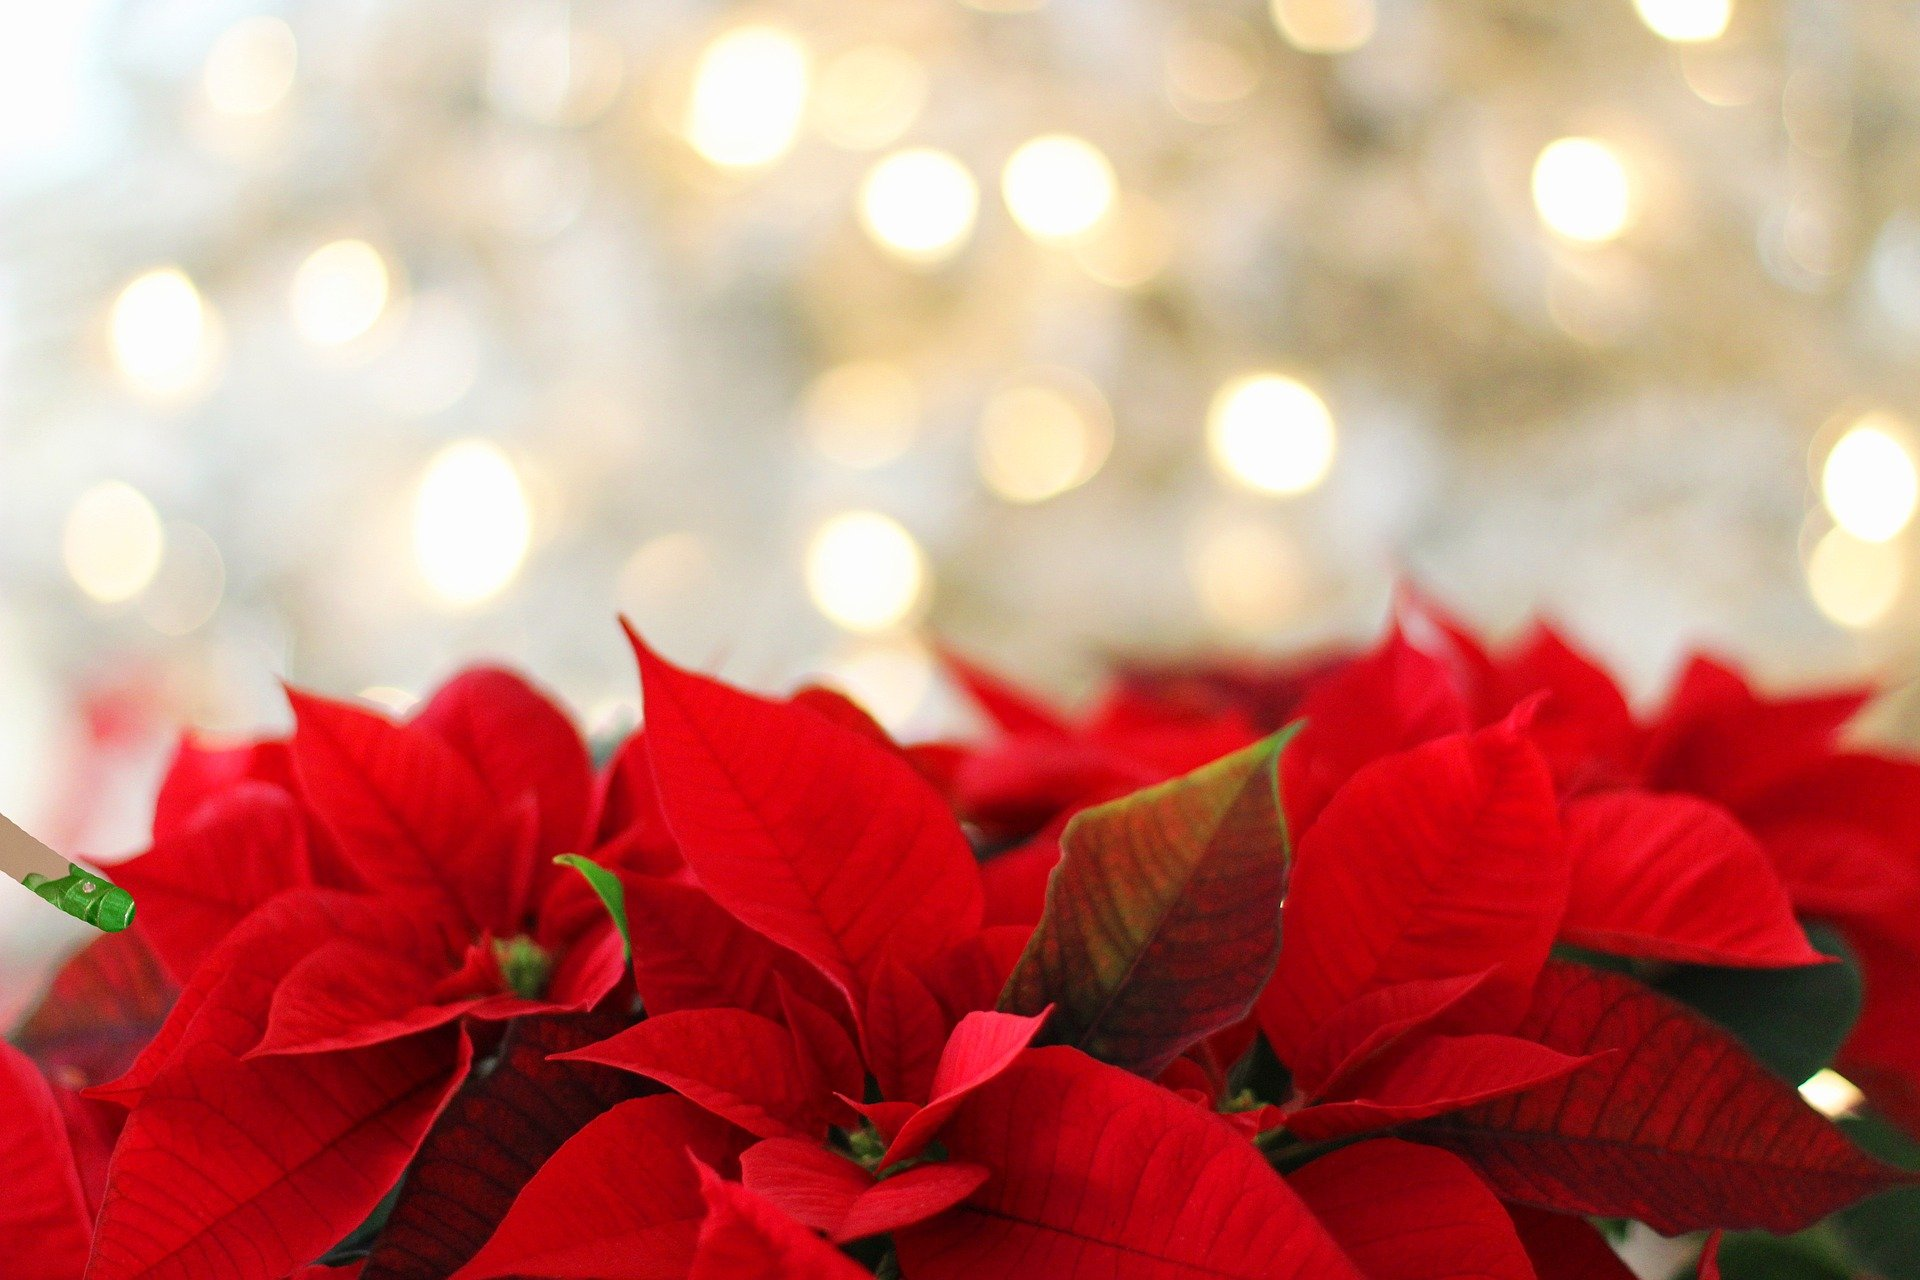 Christmas lights with poinsettia